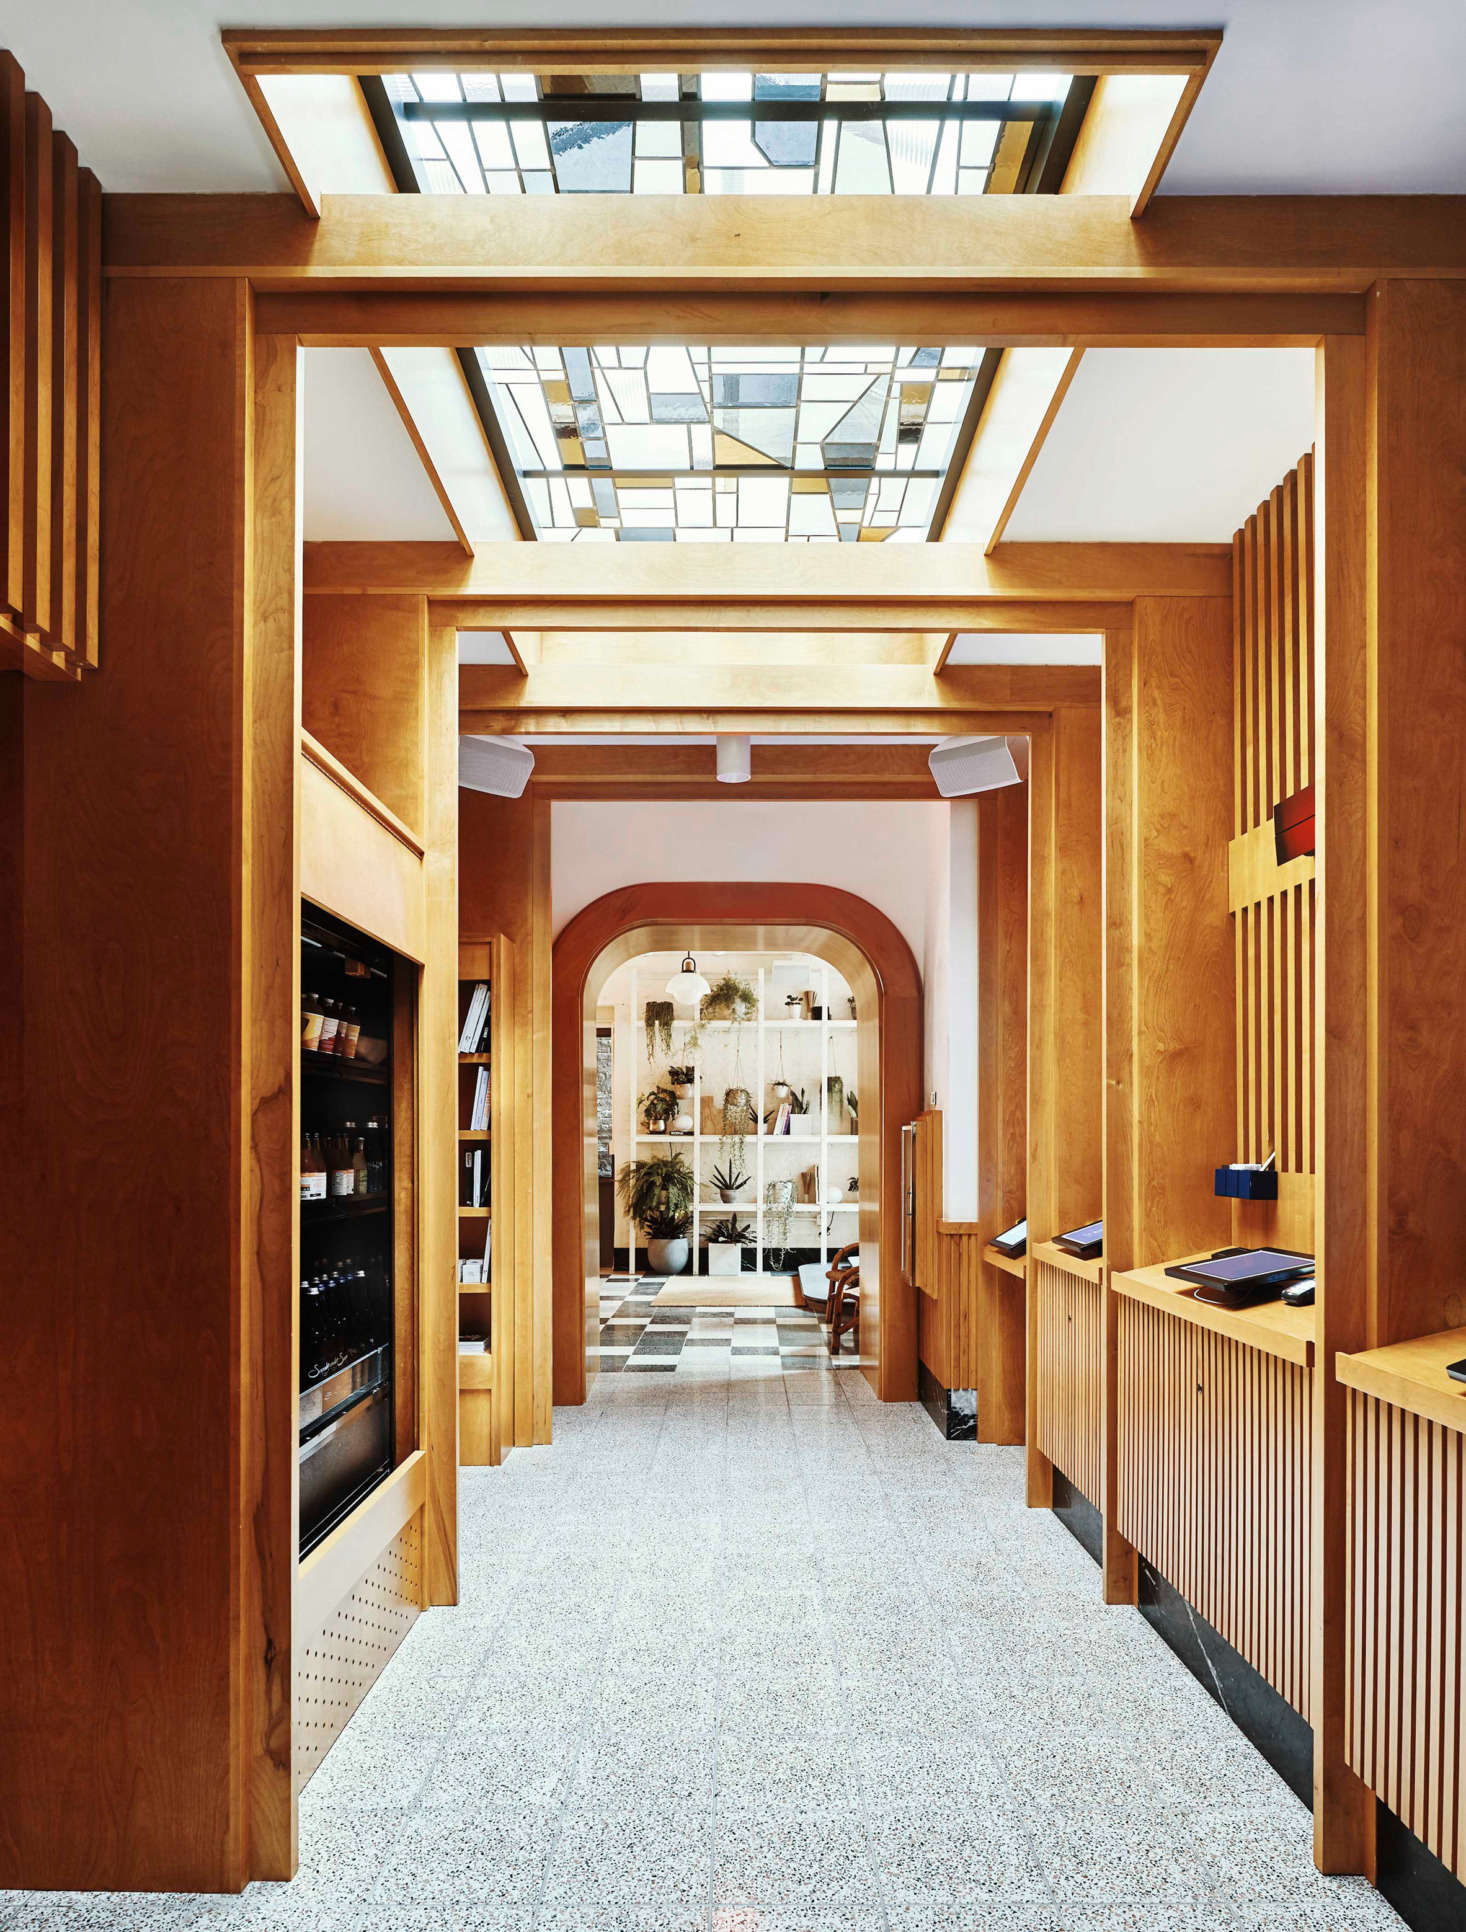 Above: The interior was inspired by Finnish saunas and Japanese bento boxes, the designers say.